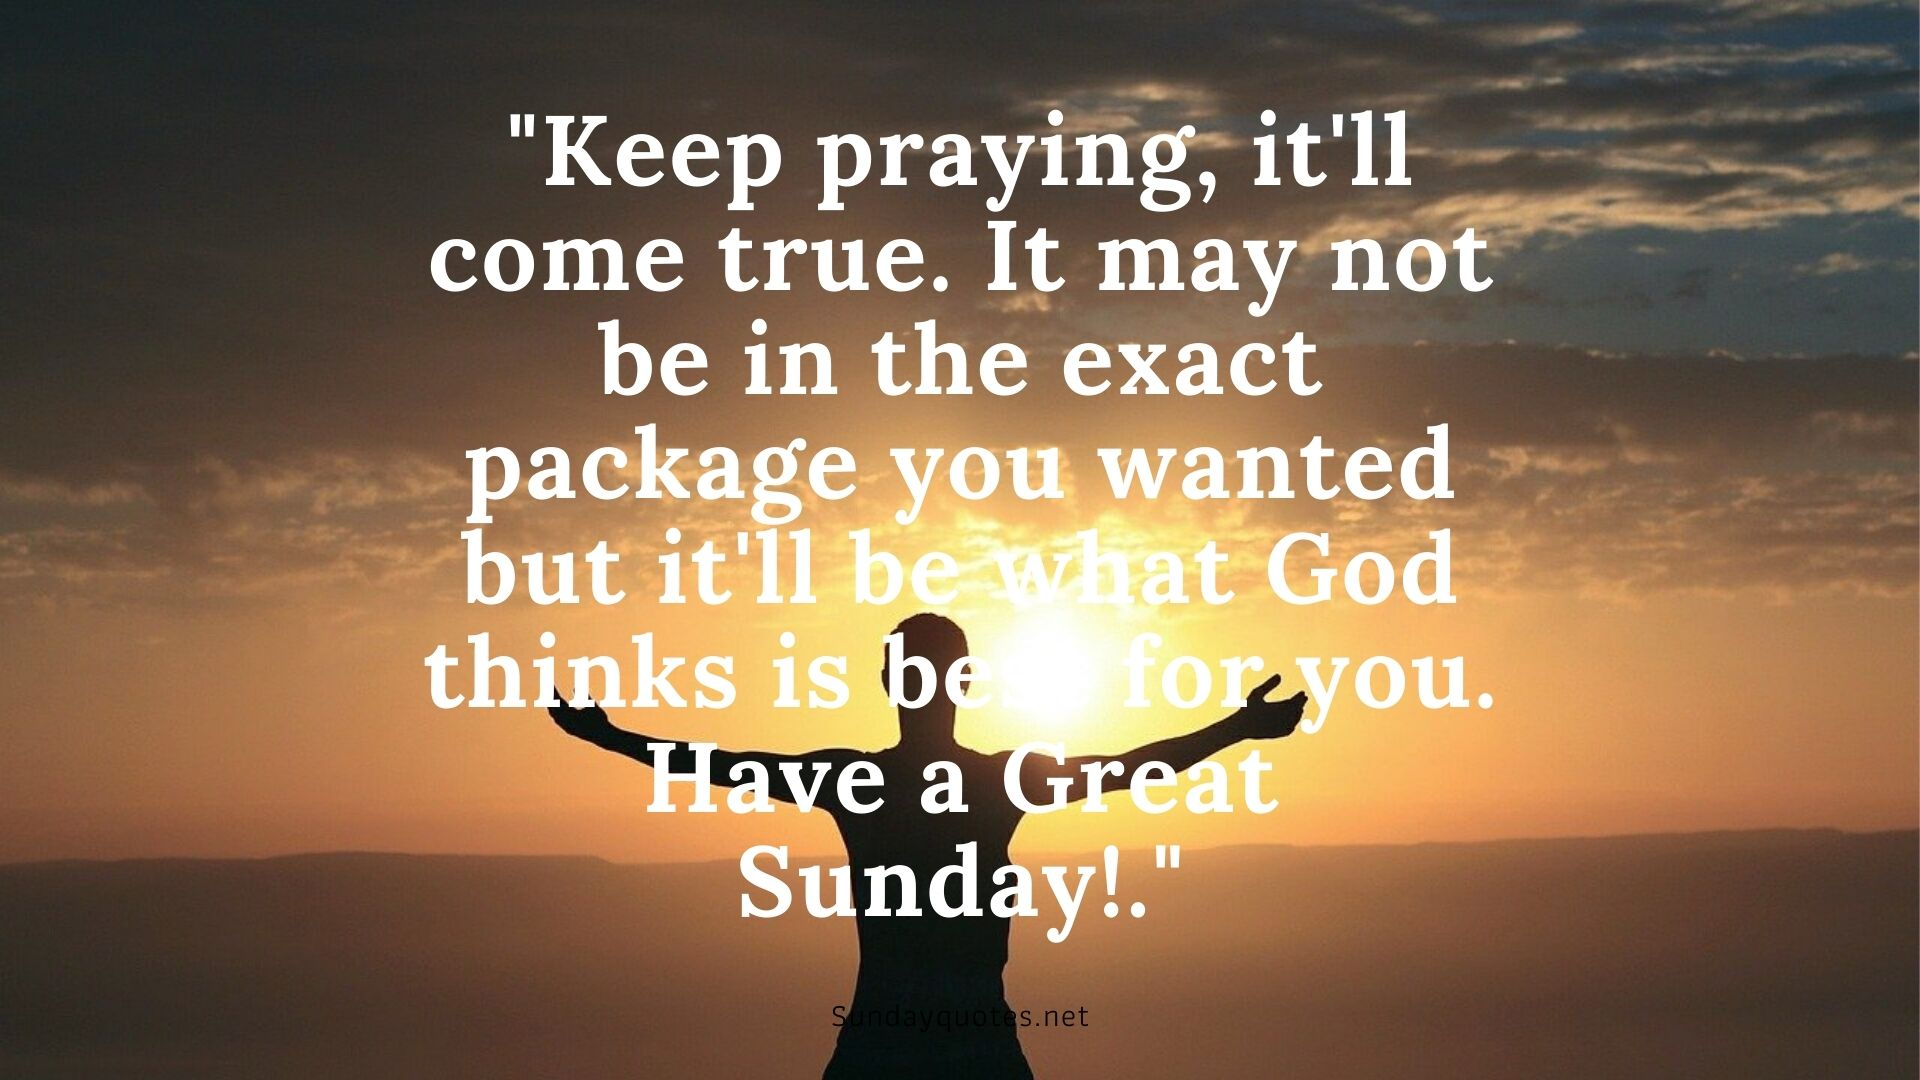 Keep praying, it'll come true. It may not be in the exact package you wanted but it'll be what God thinks is best for you. Have a Great Sunday!